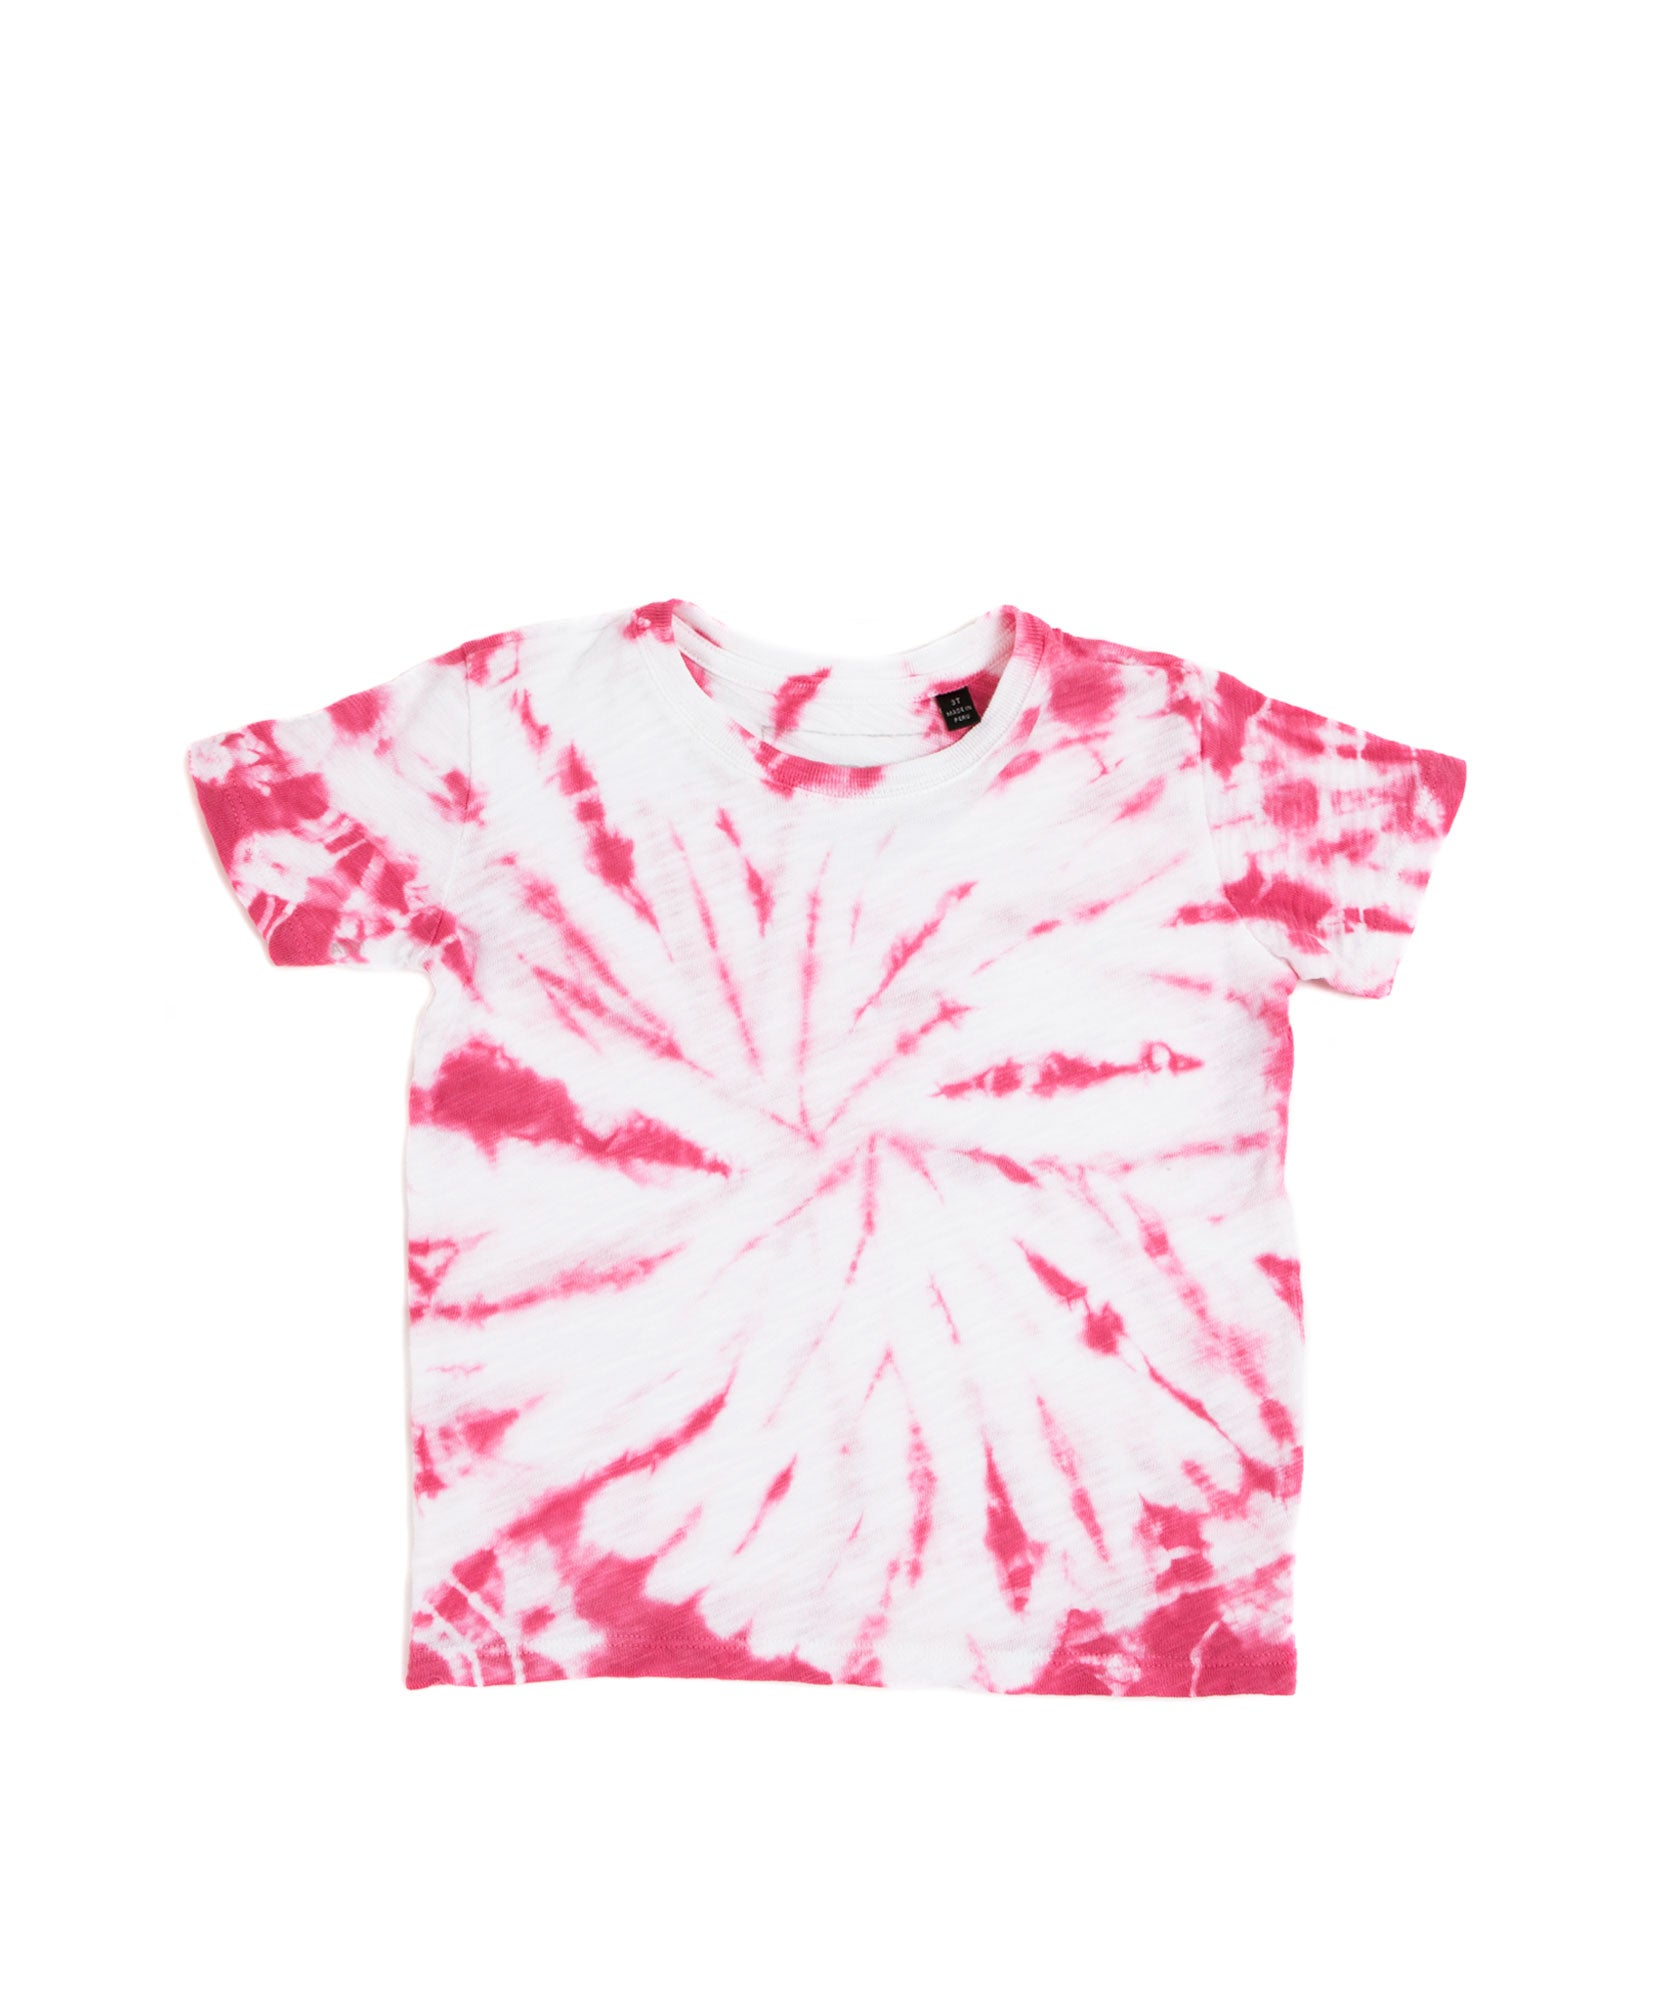 Pink Tie Dye Kids Slub Jersey Short Sleeve Tee - Kid's Cotton Short Sleeve Tee by ATM Anthony Thomas Melillo